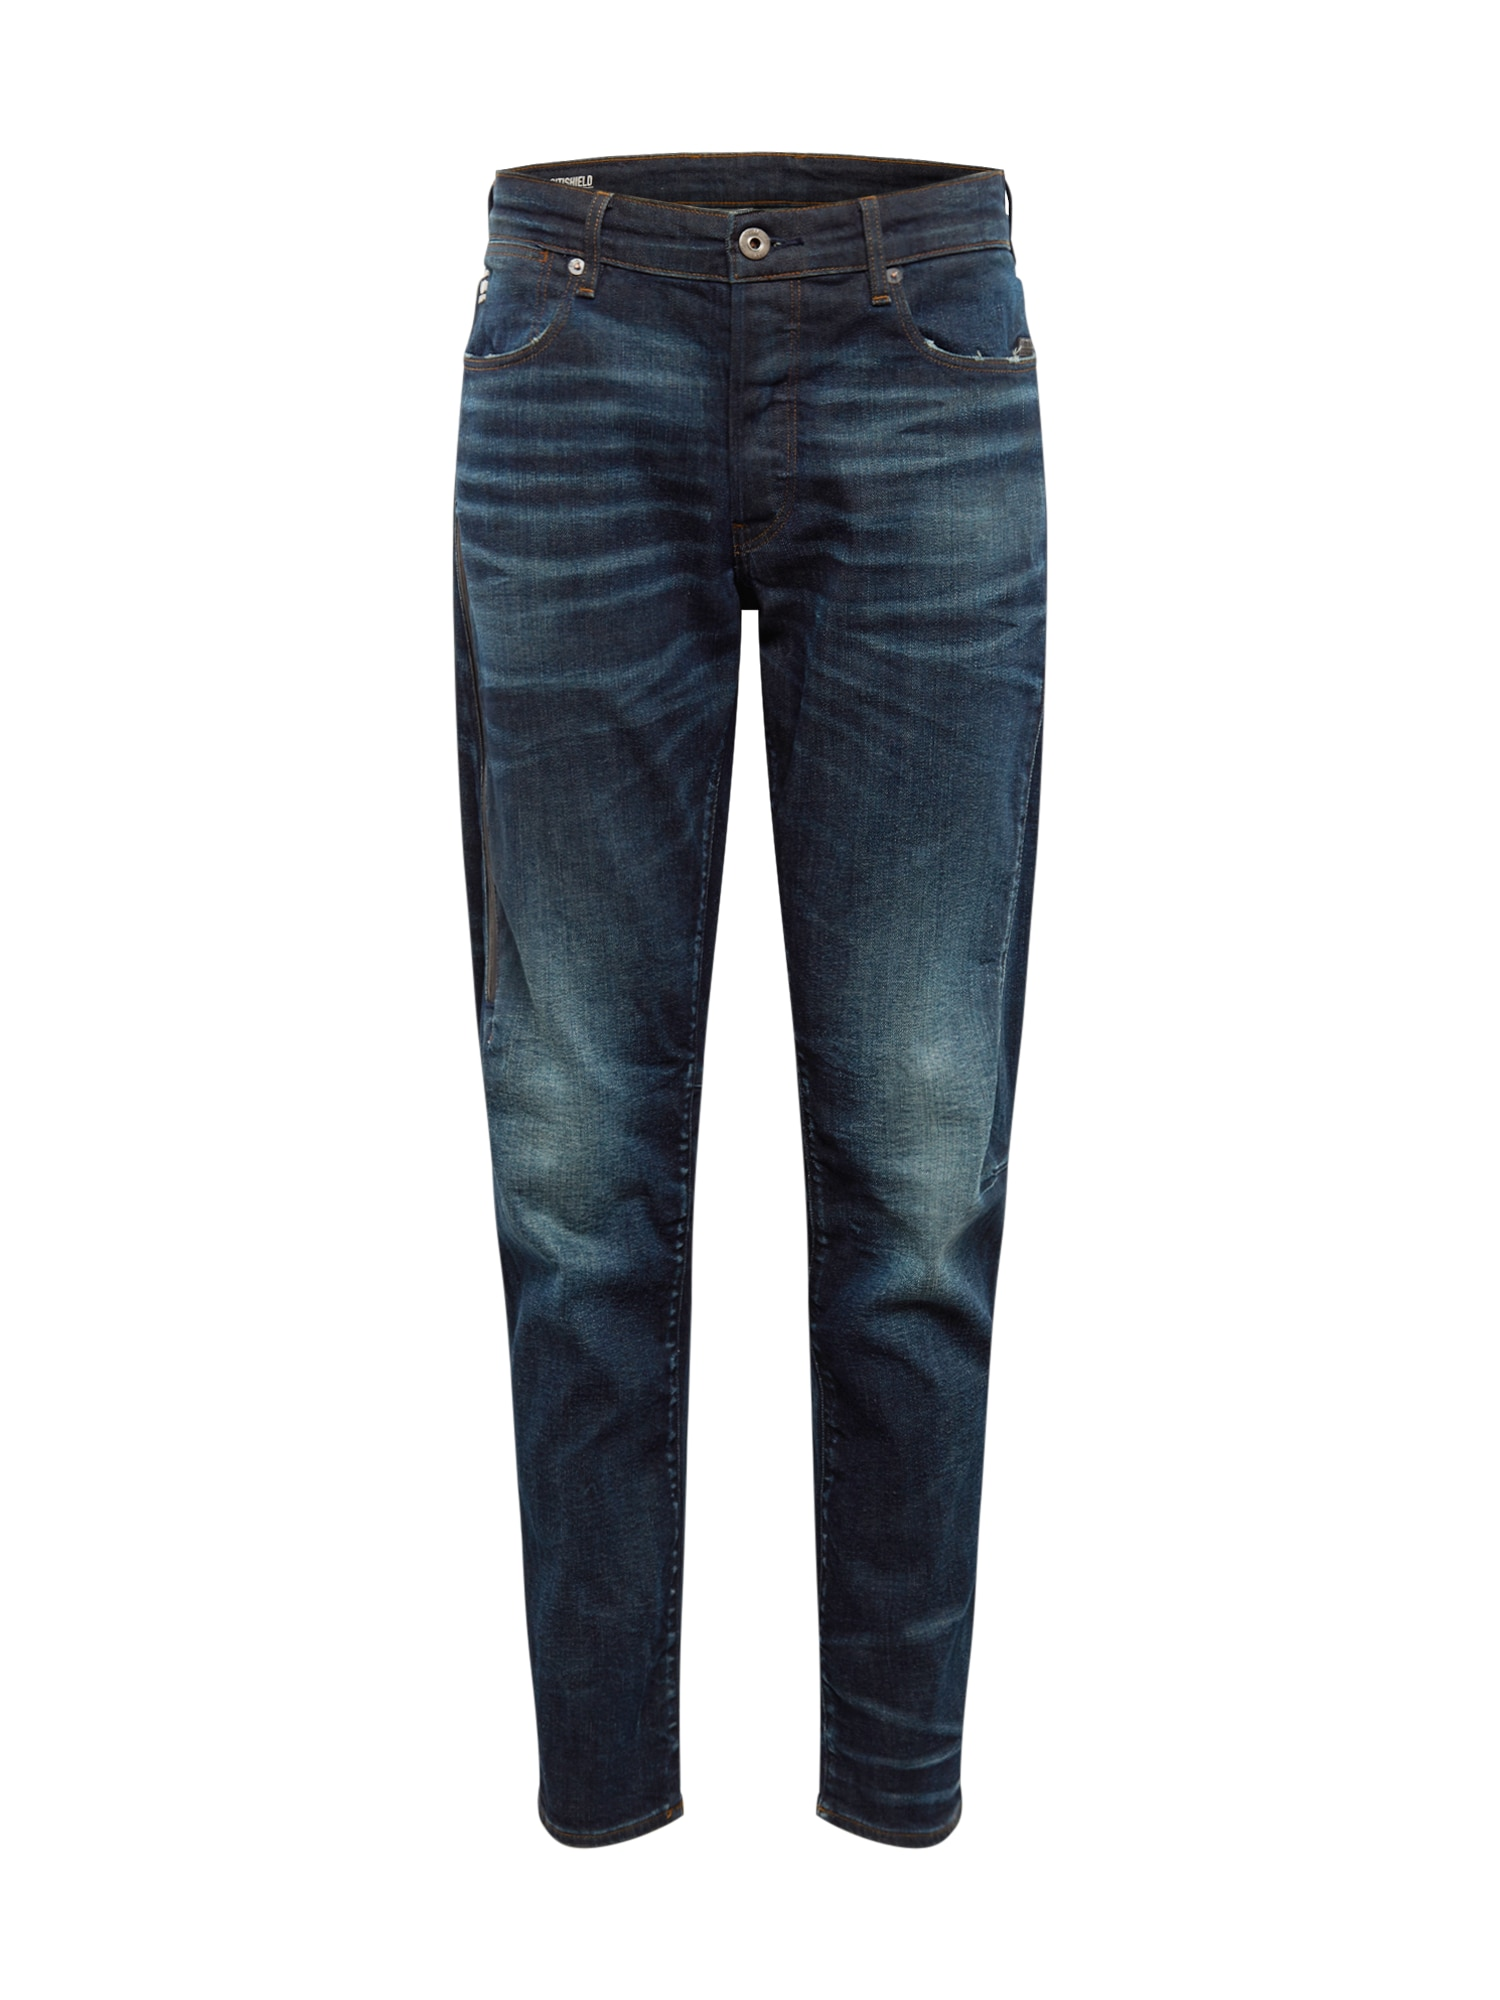 G-Star RAW Džinsai 'Citishield 3D slim tapered' tamsiai (džinso) mėlyna